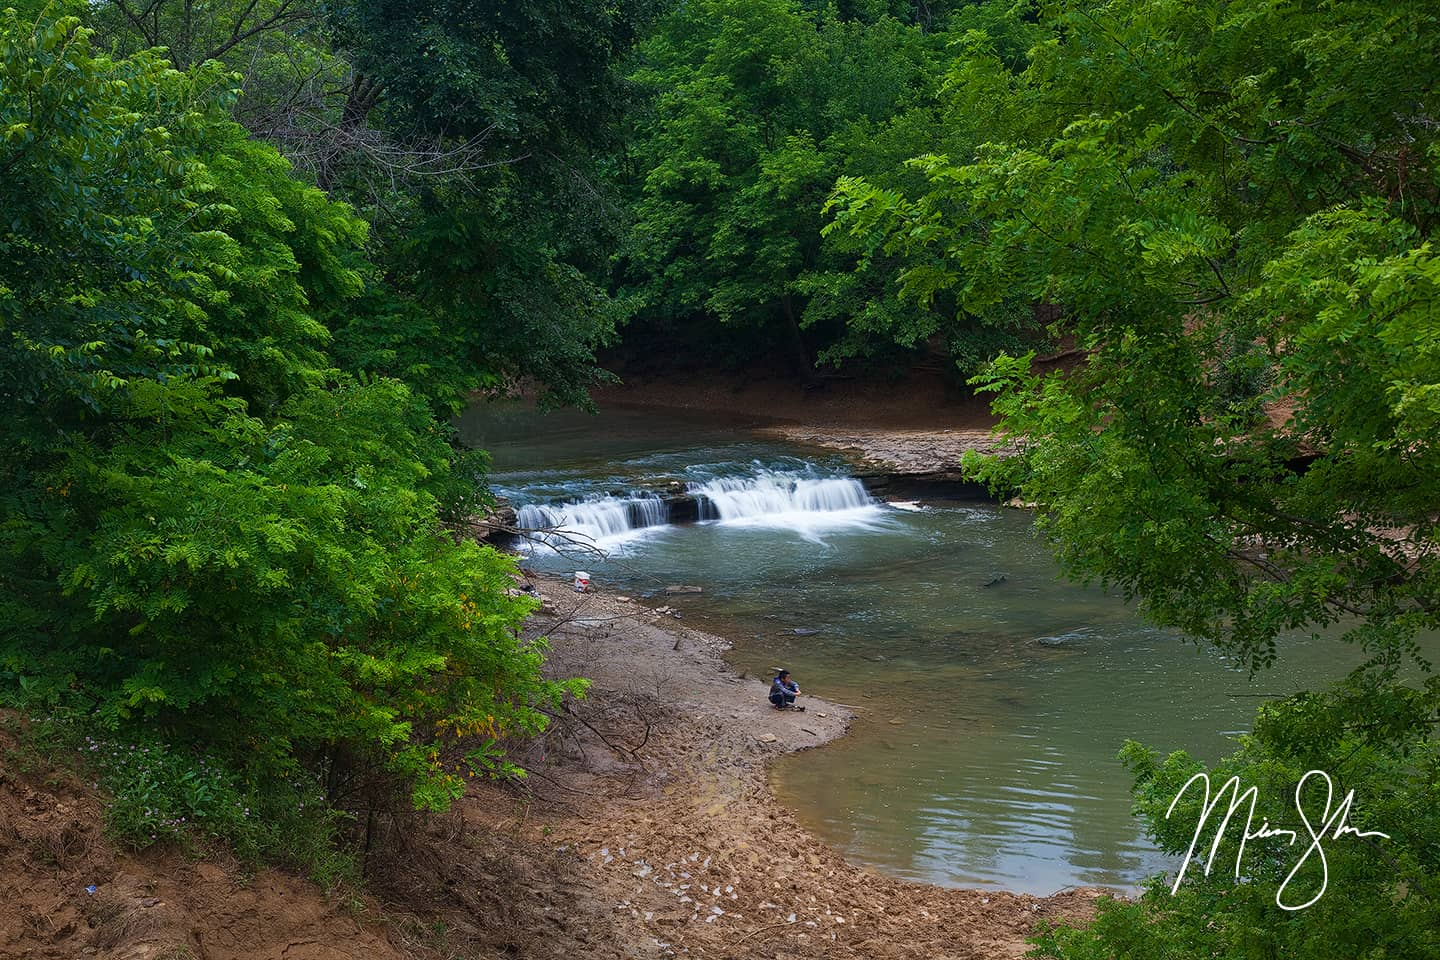 Fishing at Wakarusa River Falls